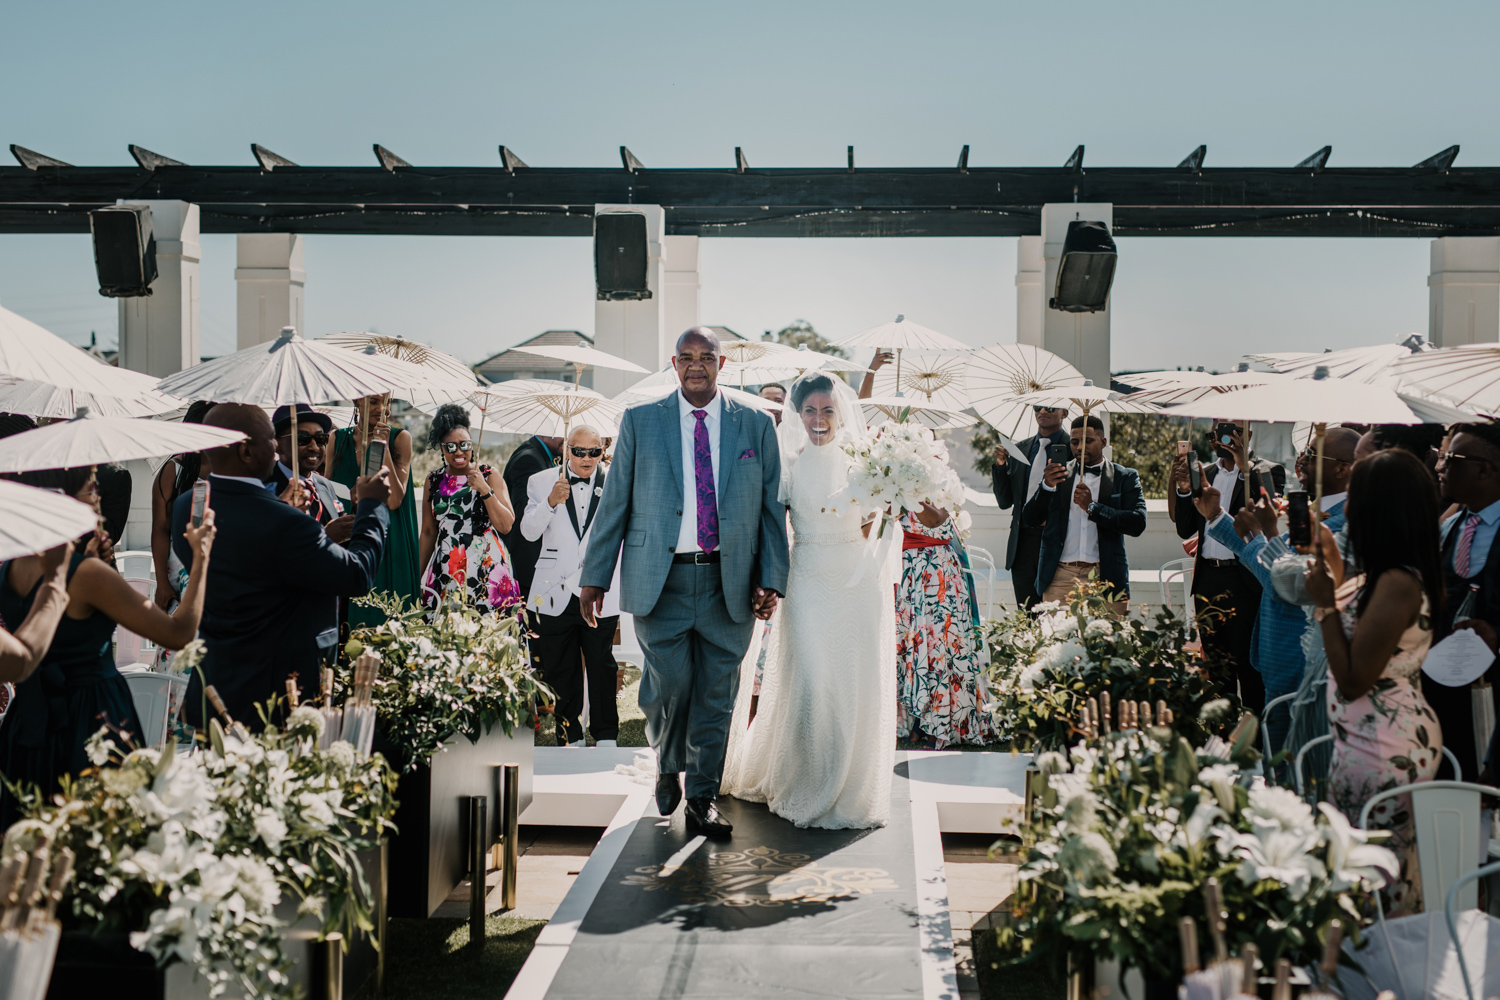 an Image taken by Vivideblue of the bride walking down the isle holding her bouquet on her wedding day at Val De Vie.